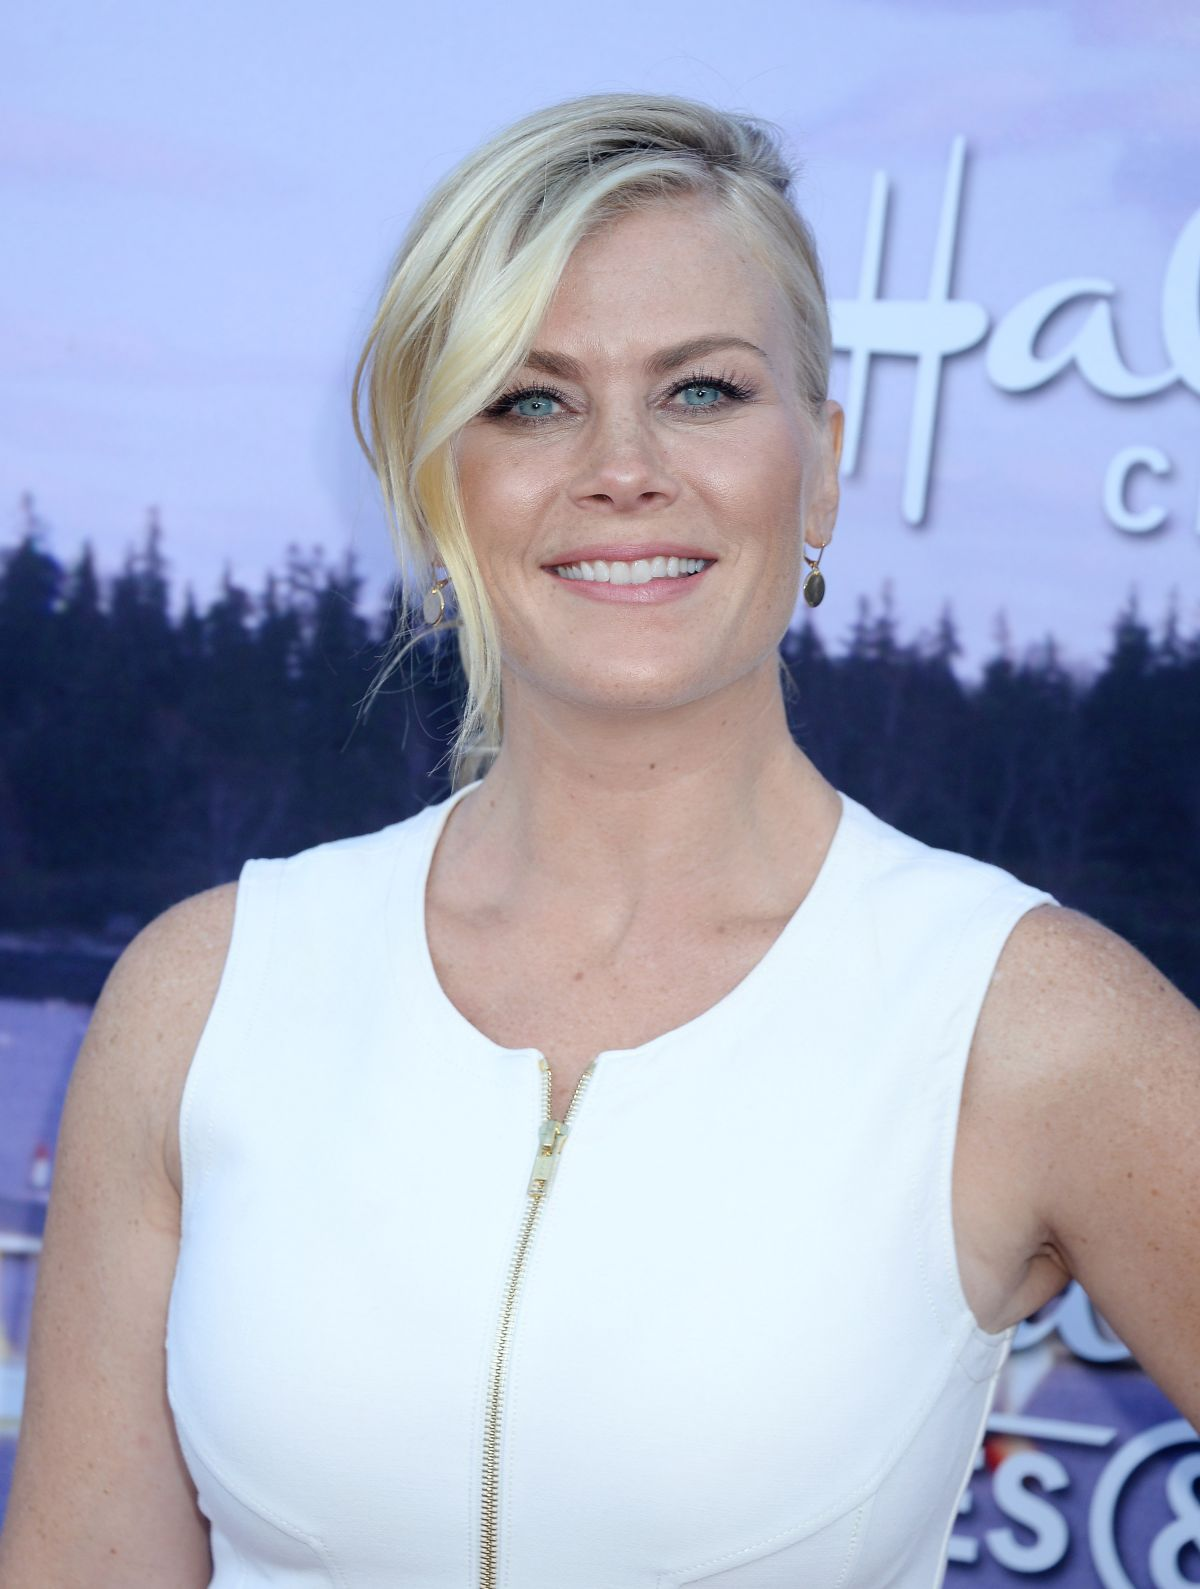 Alison Sweeney At Hallmark Movies and Mysteries Summer 2016 TCA Press Tour in Beverly Hills